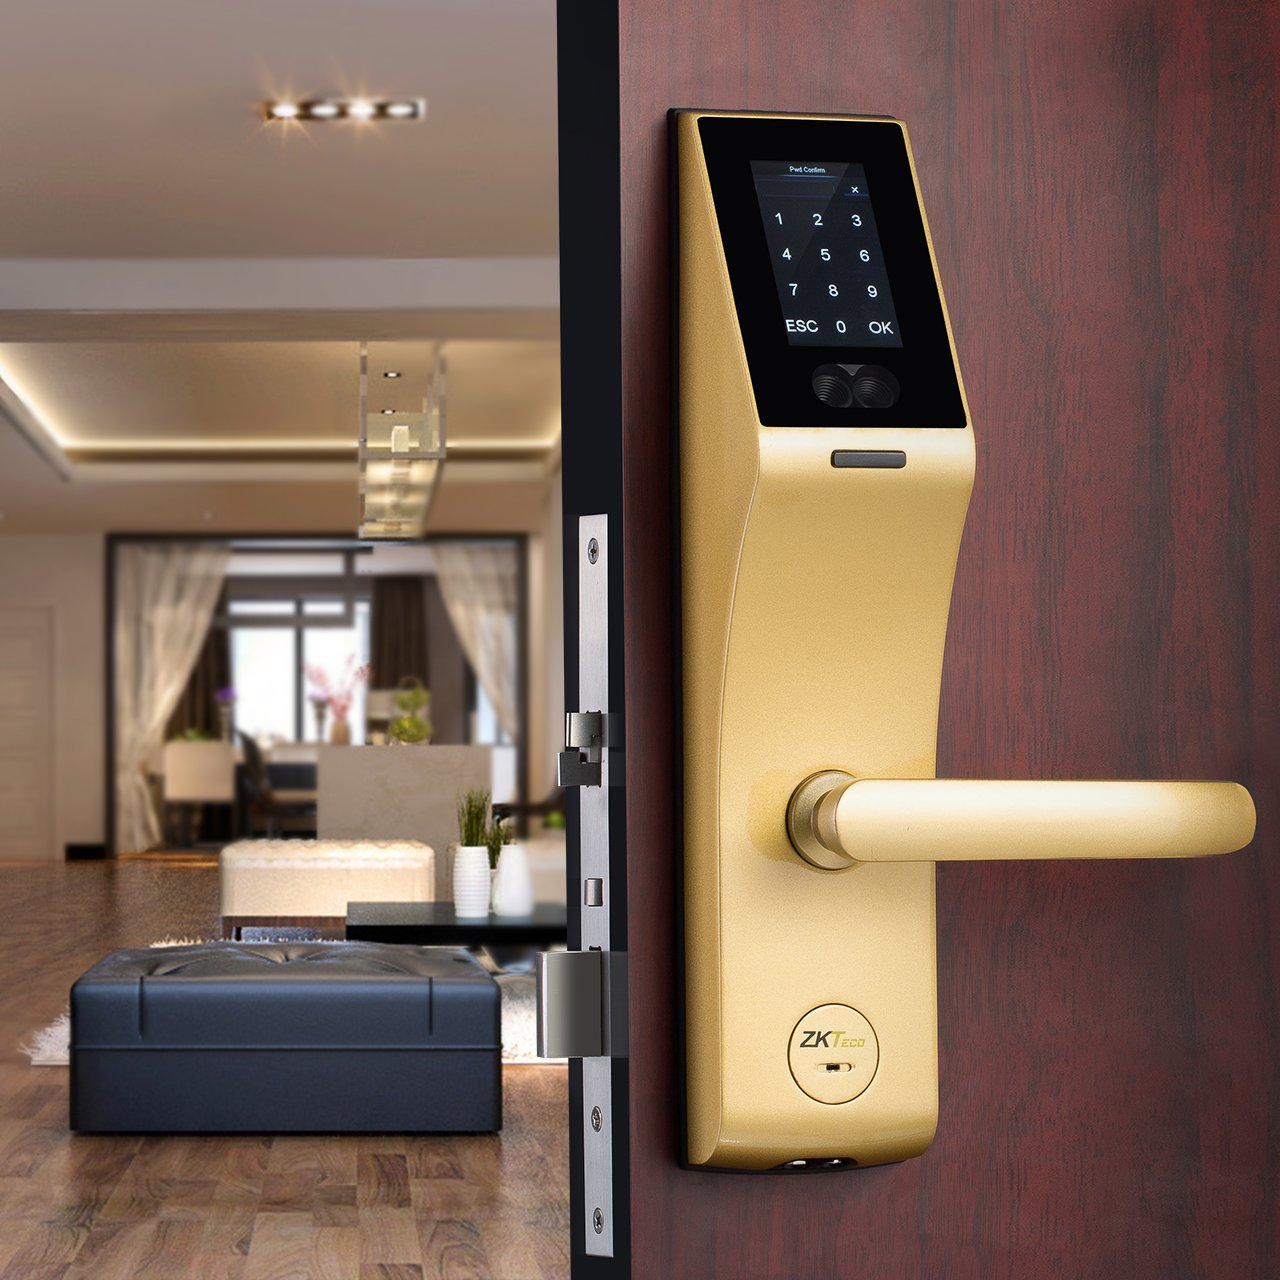 Pin By On Medical Automation Door Automatic Lock System With 805189c5189c52 Microcontroller Zkteco Fl1000 New Concept Face Recognition Card Mechanical Key Support Query Open Logs Usb Flash Disk Amazoncom